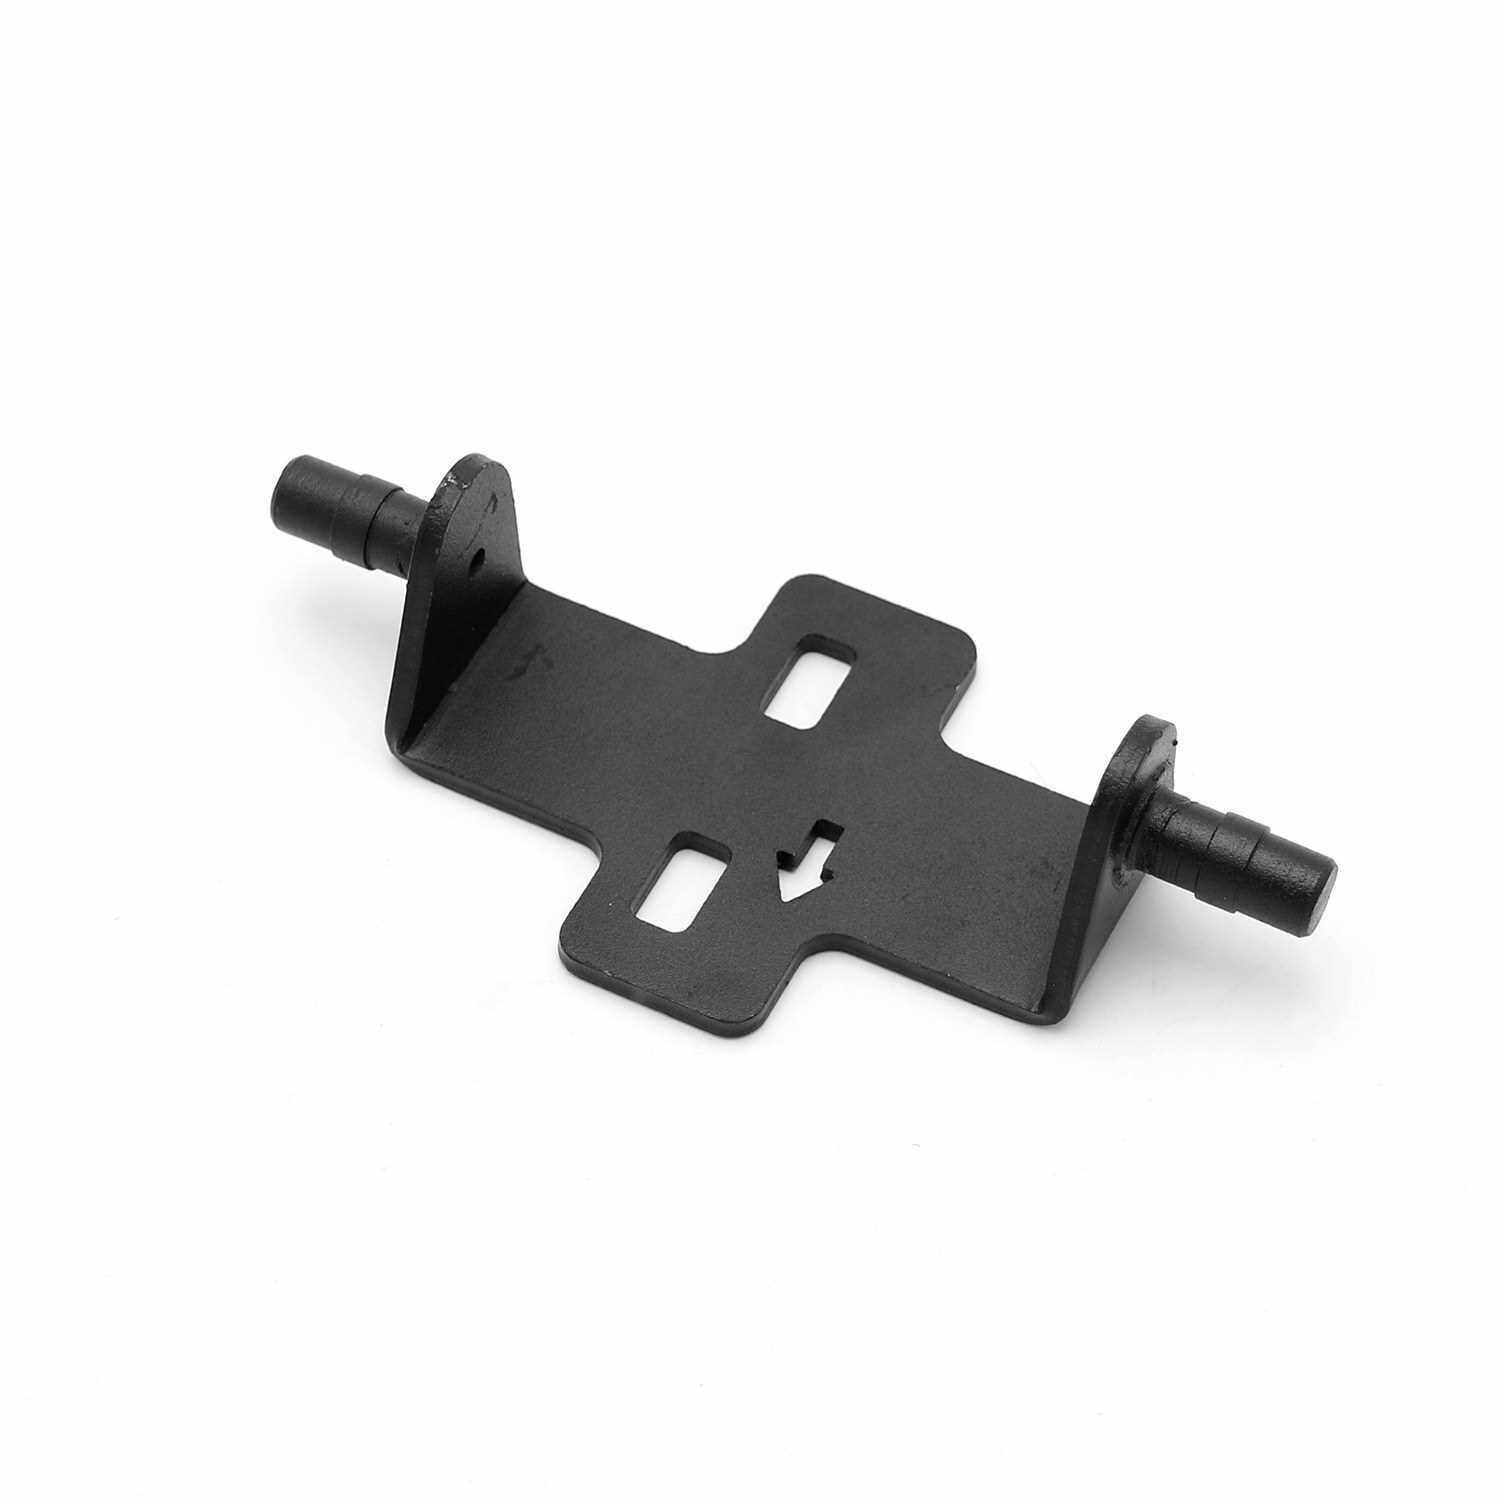 Motorcycle Seat Lowering Kit Bracket Seat Lower Mounting Motorcycle Accessories Replacement for BMW R1200GS LC ADV 2013-2018 / R1200RT 2008-2018 (Black)